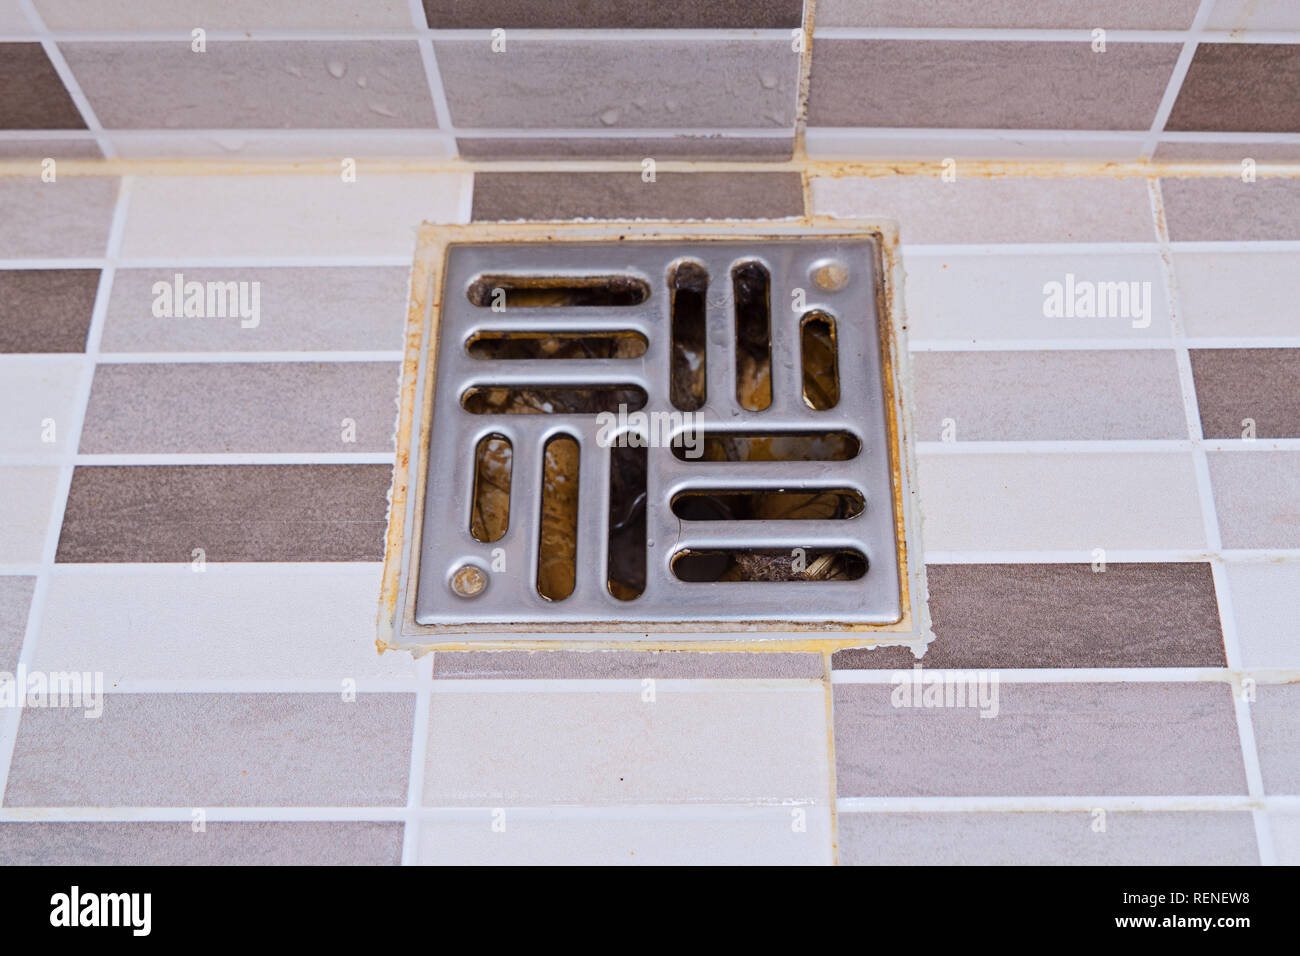 Dirty stainless steel bath shower drain in modern style. Wet shower drain with unhygienic trash, top view - Stock Image